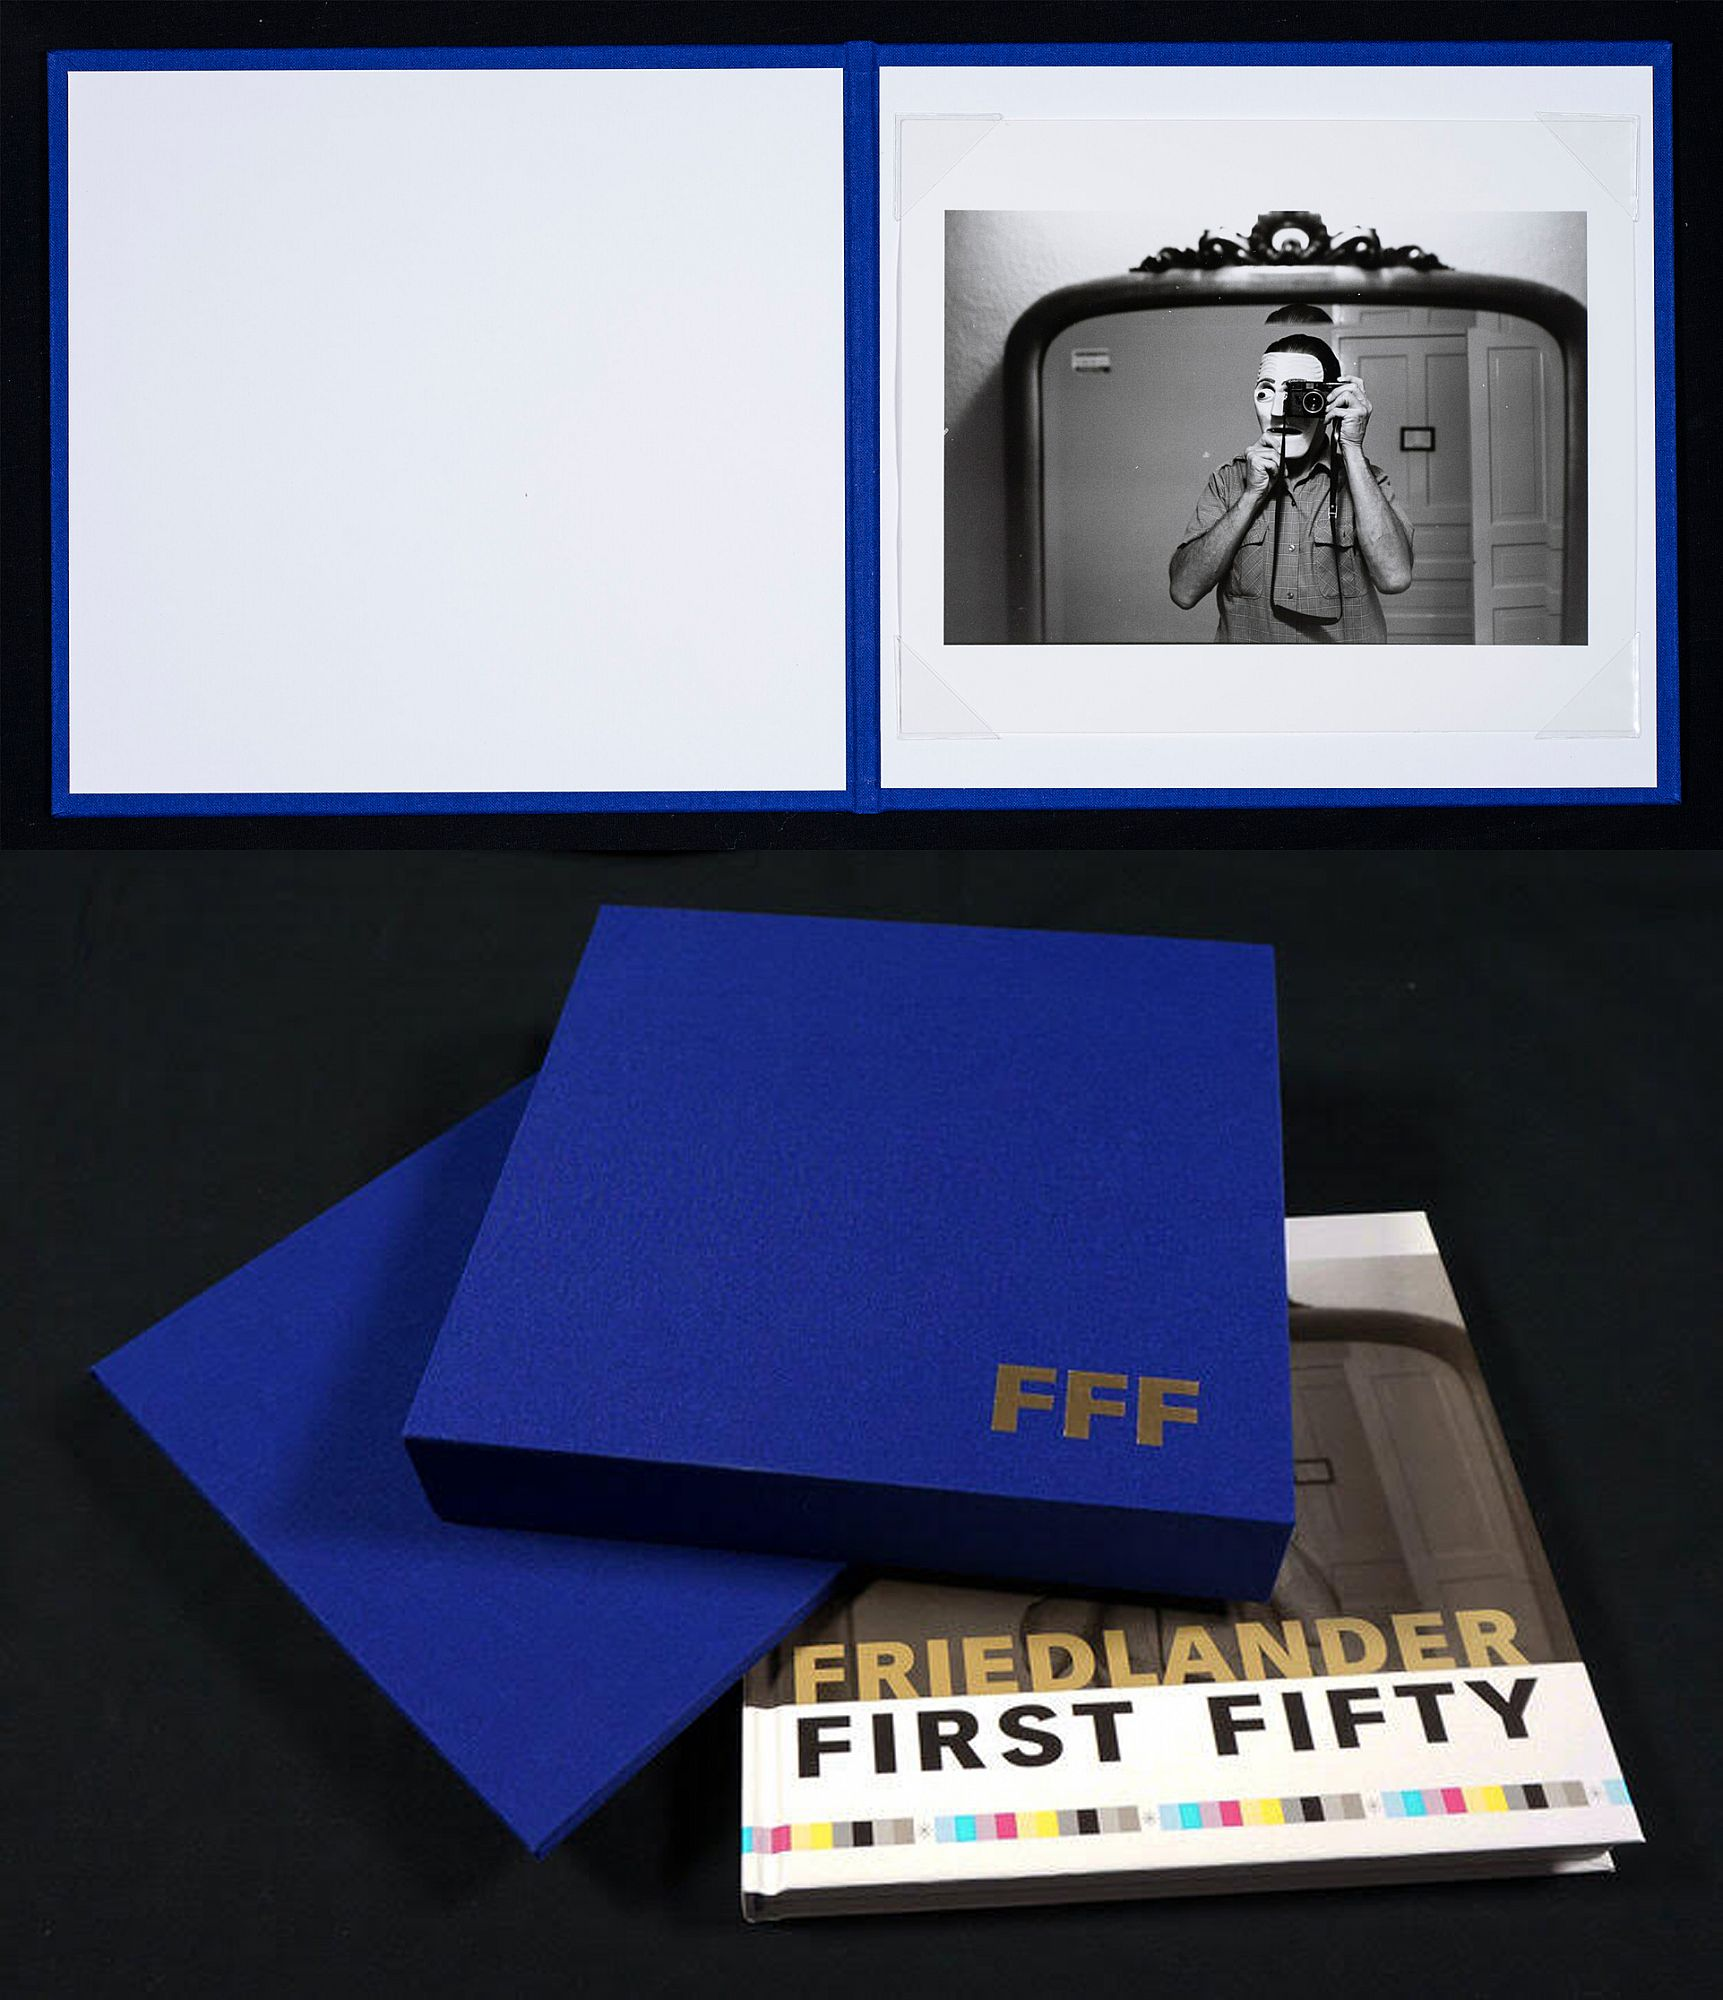 Lee Friedlander: Friedlander First Fifty, Special Limited Edition with Gelatin Silver Print [SIGNED]